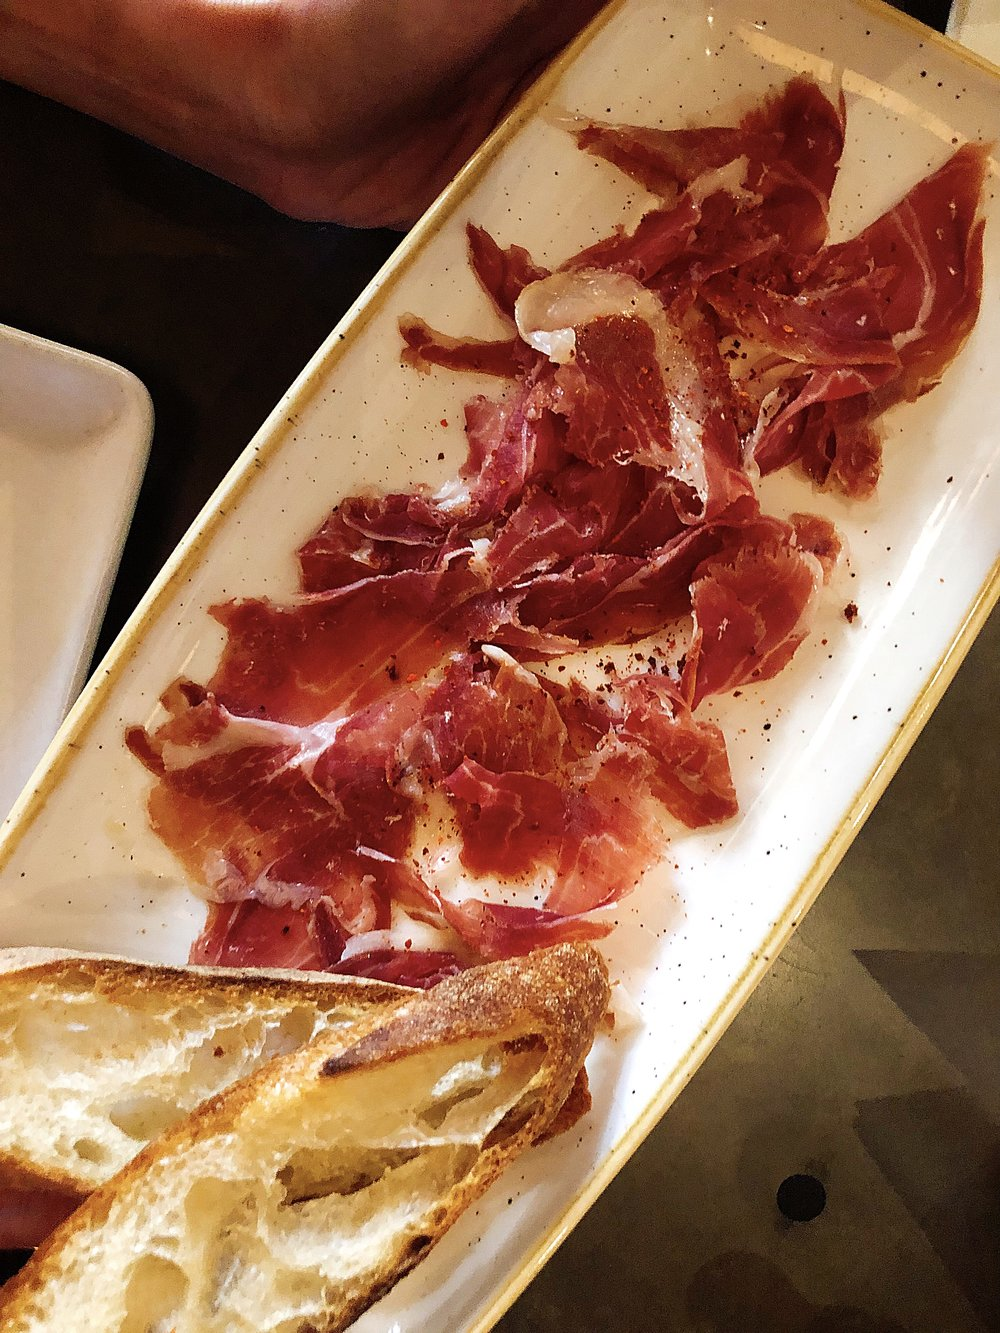 The Jamón Iberico +  Garlic Crouton